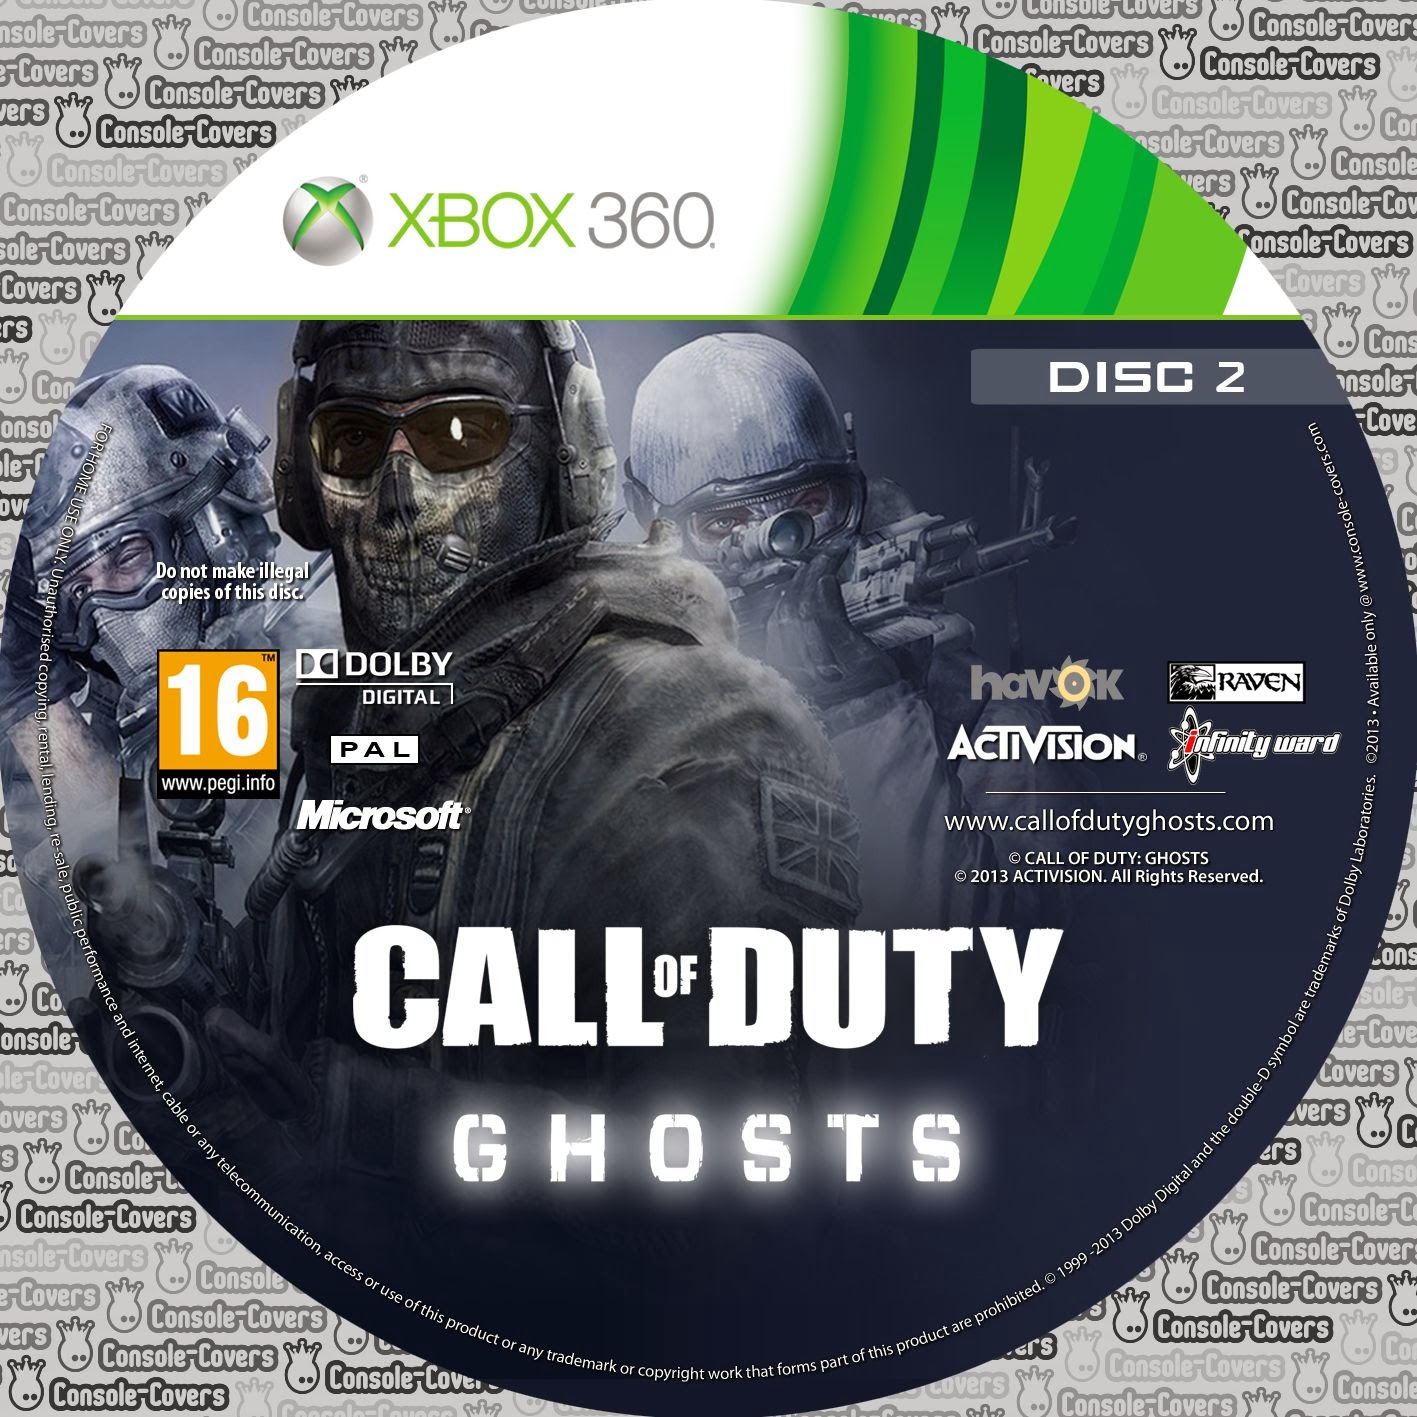 Call of duty ghosts 2 xbox 360 - La nintendo 3ds